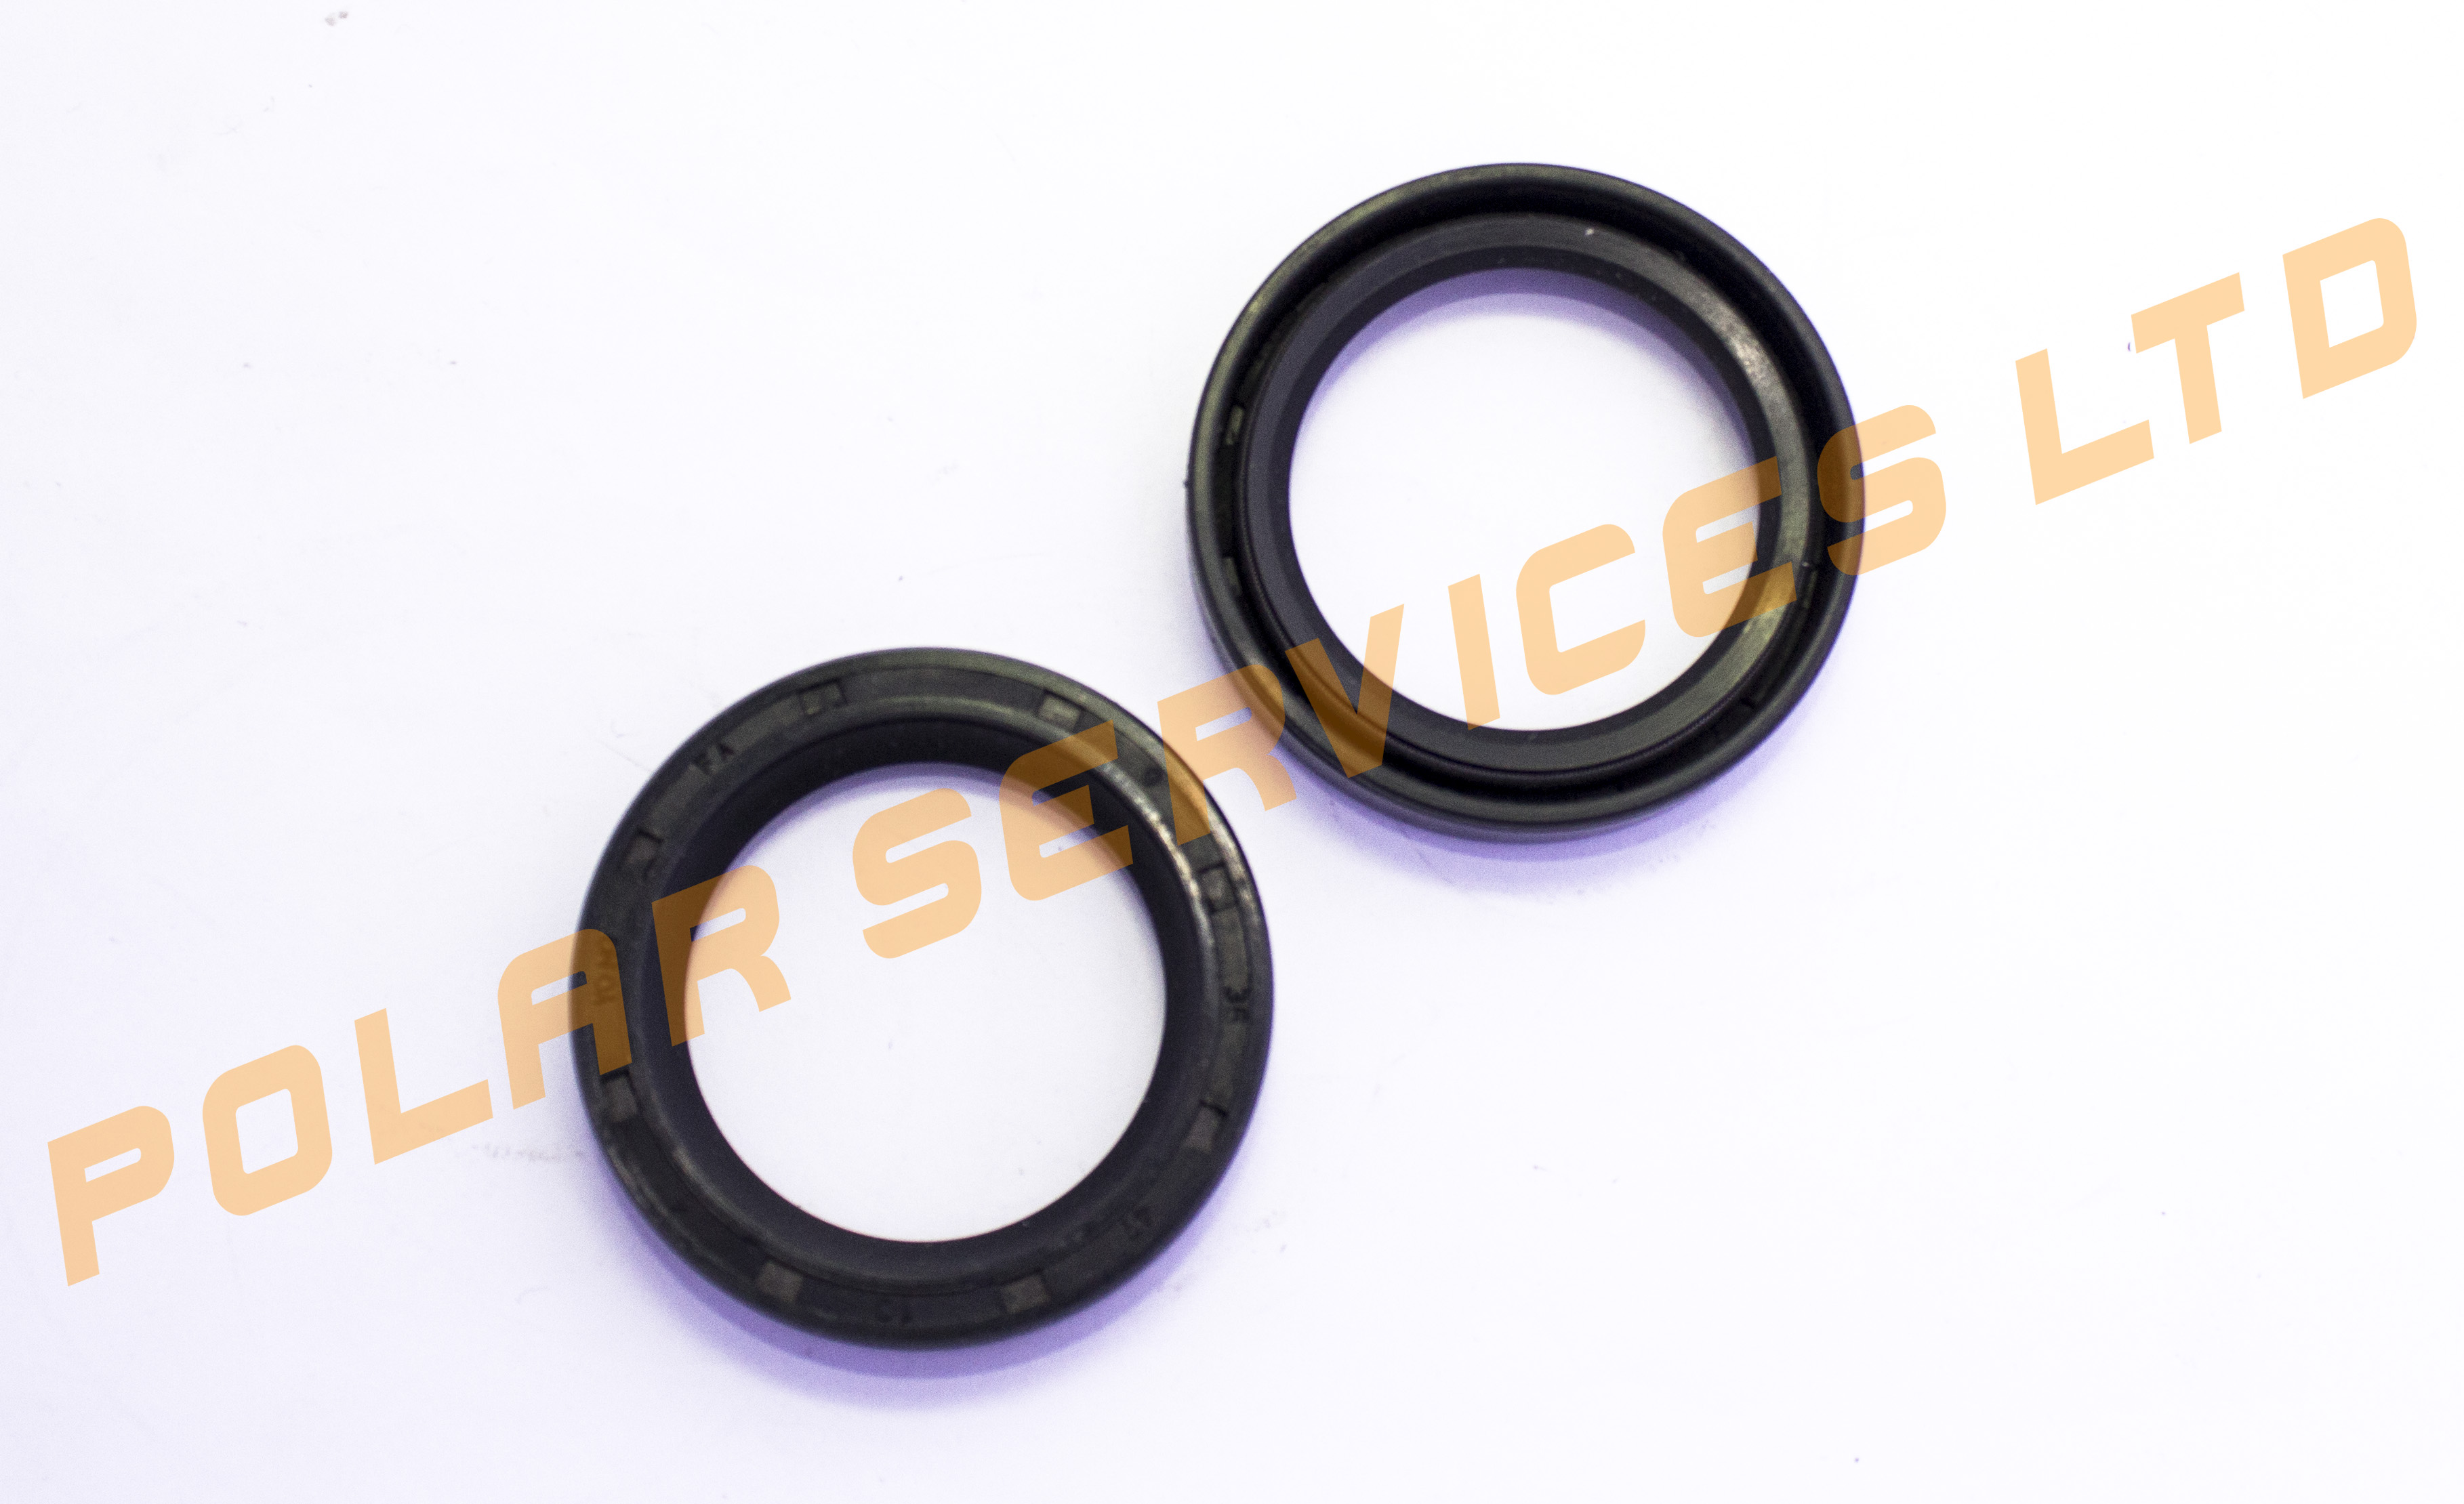 WASHING MACHINE BEARING SEAL 35 X 47 X 10 G ARDO/ MERLONI/ VARIE/ MARCHE Malta, 								Washing Machine Malta, Polar Services LTD Malta Malta